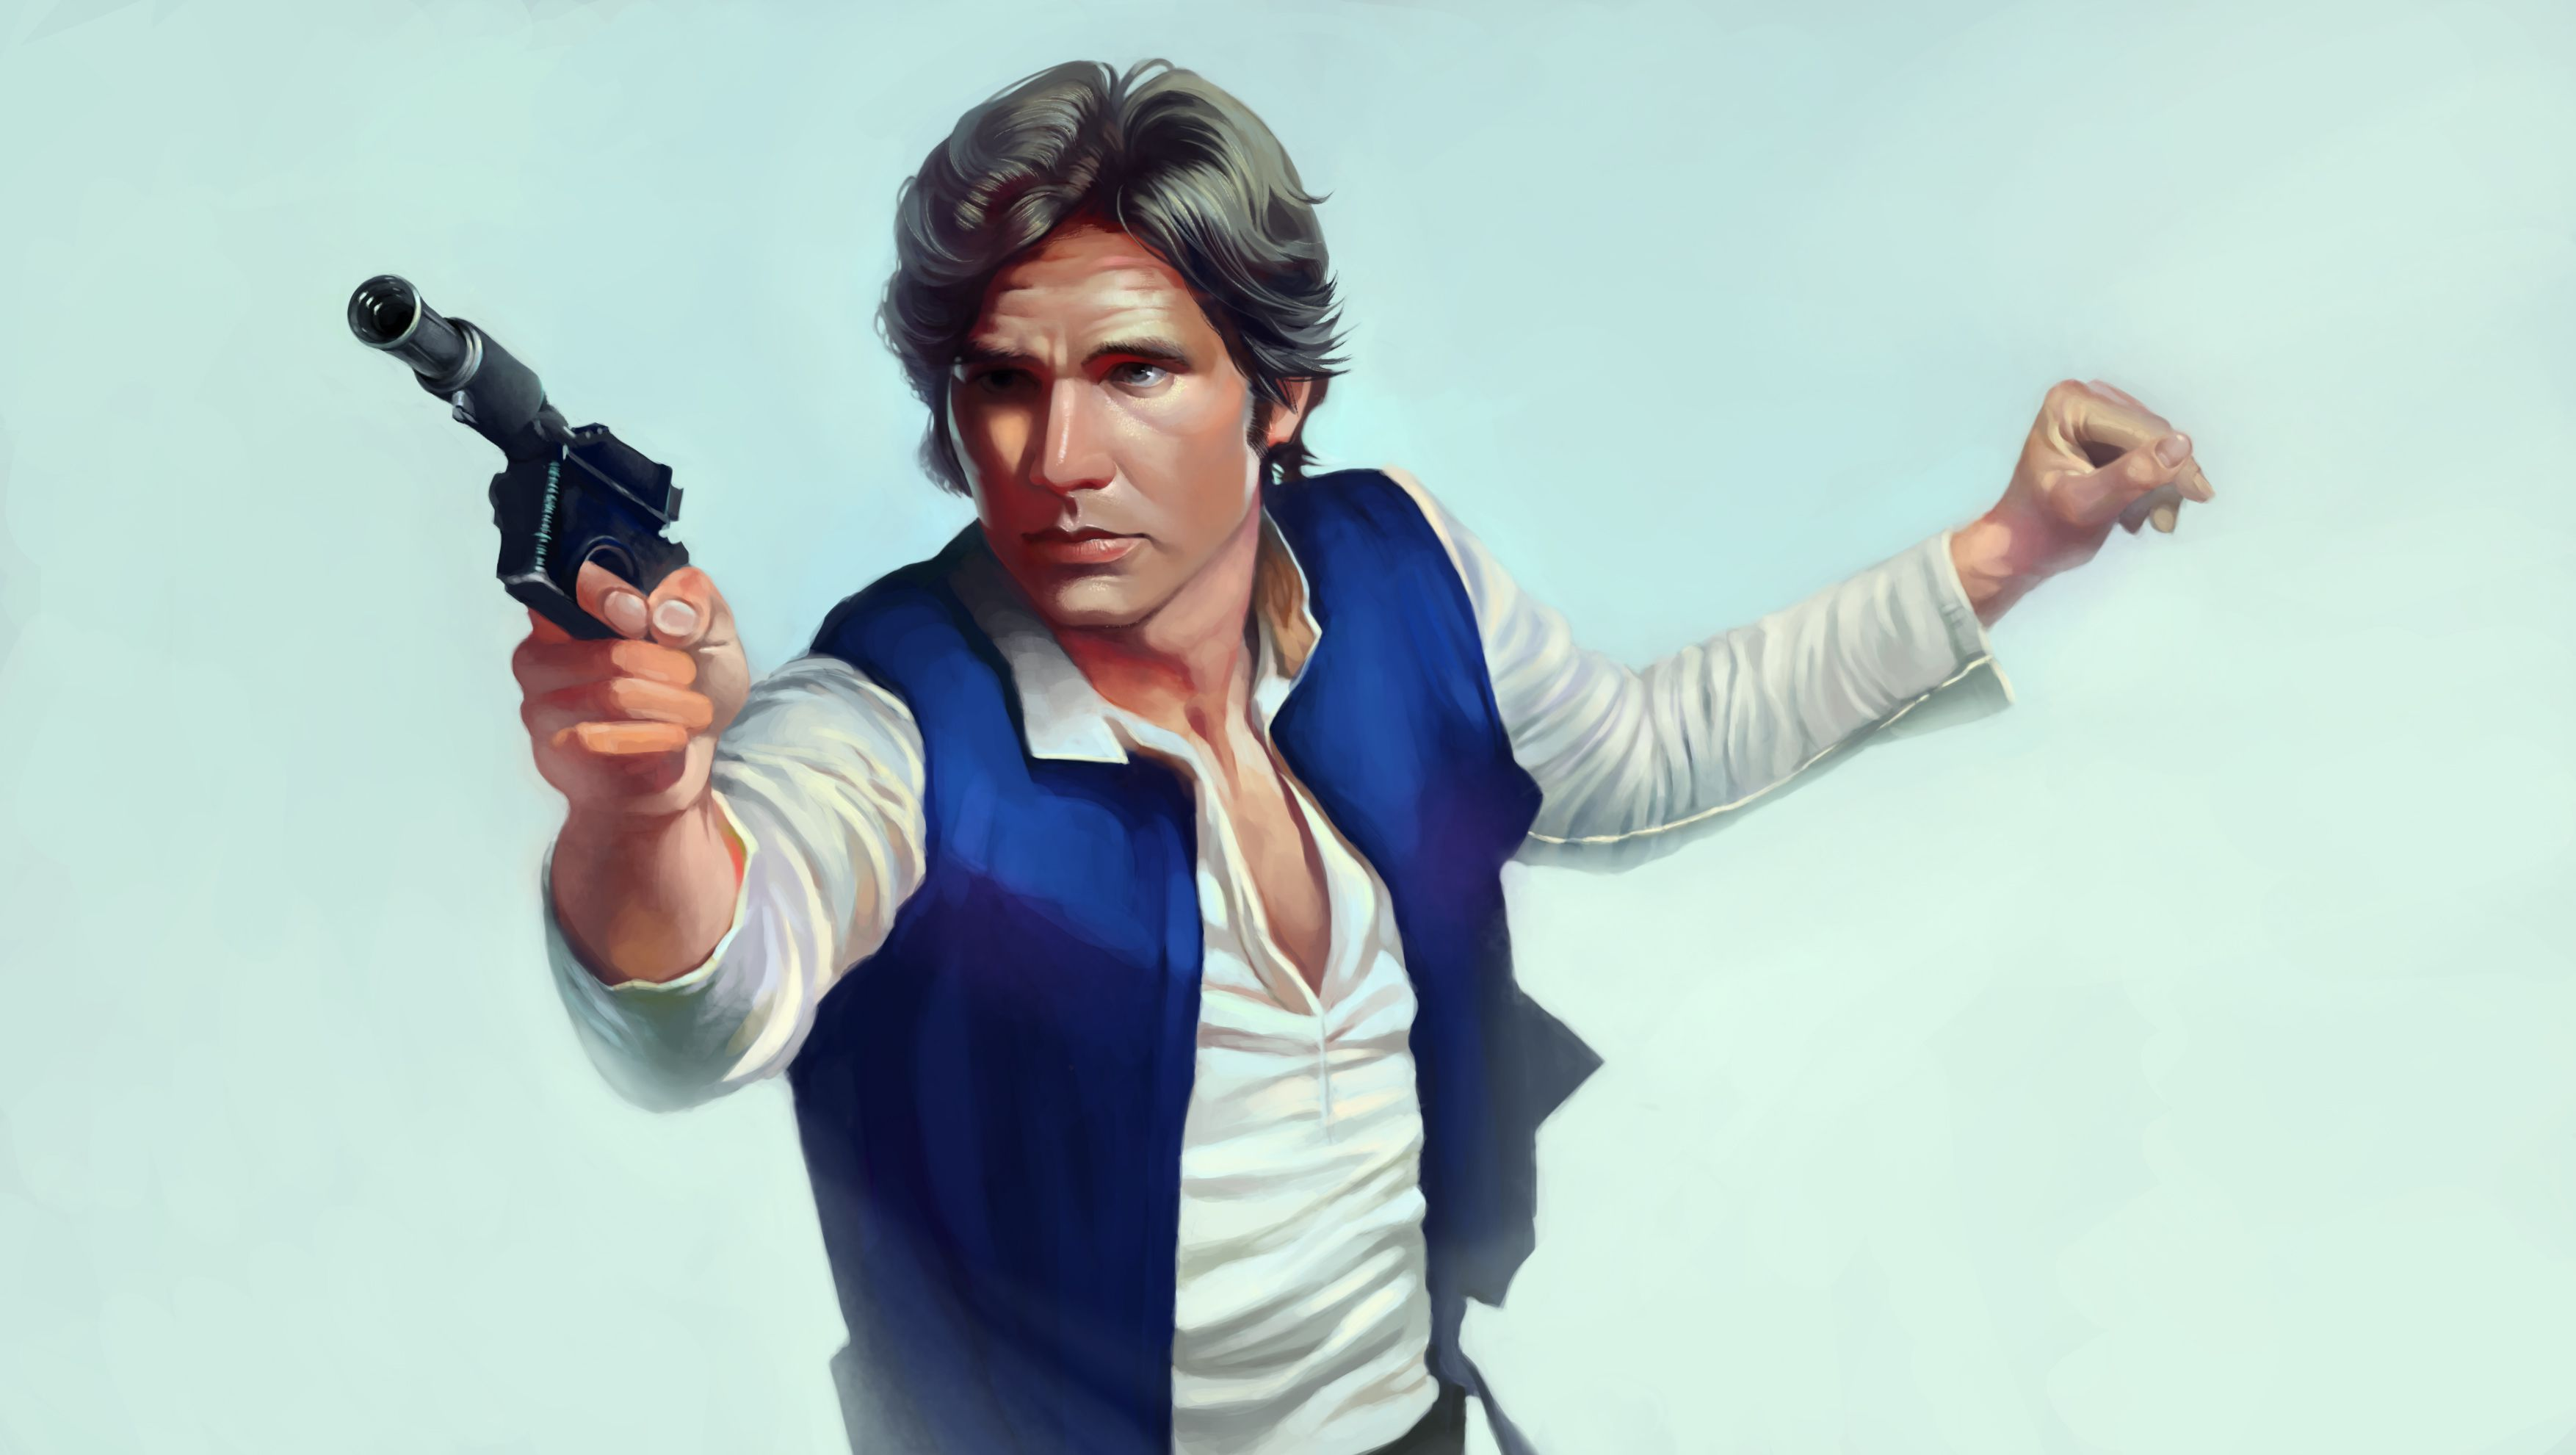 Star Wars Han Solo High Quality Wallpapers